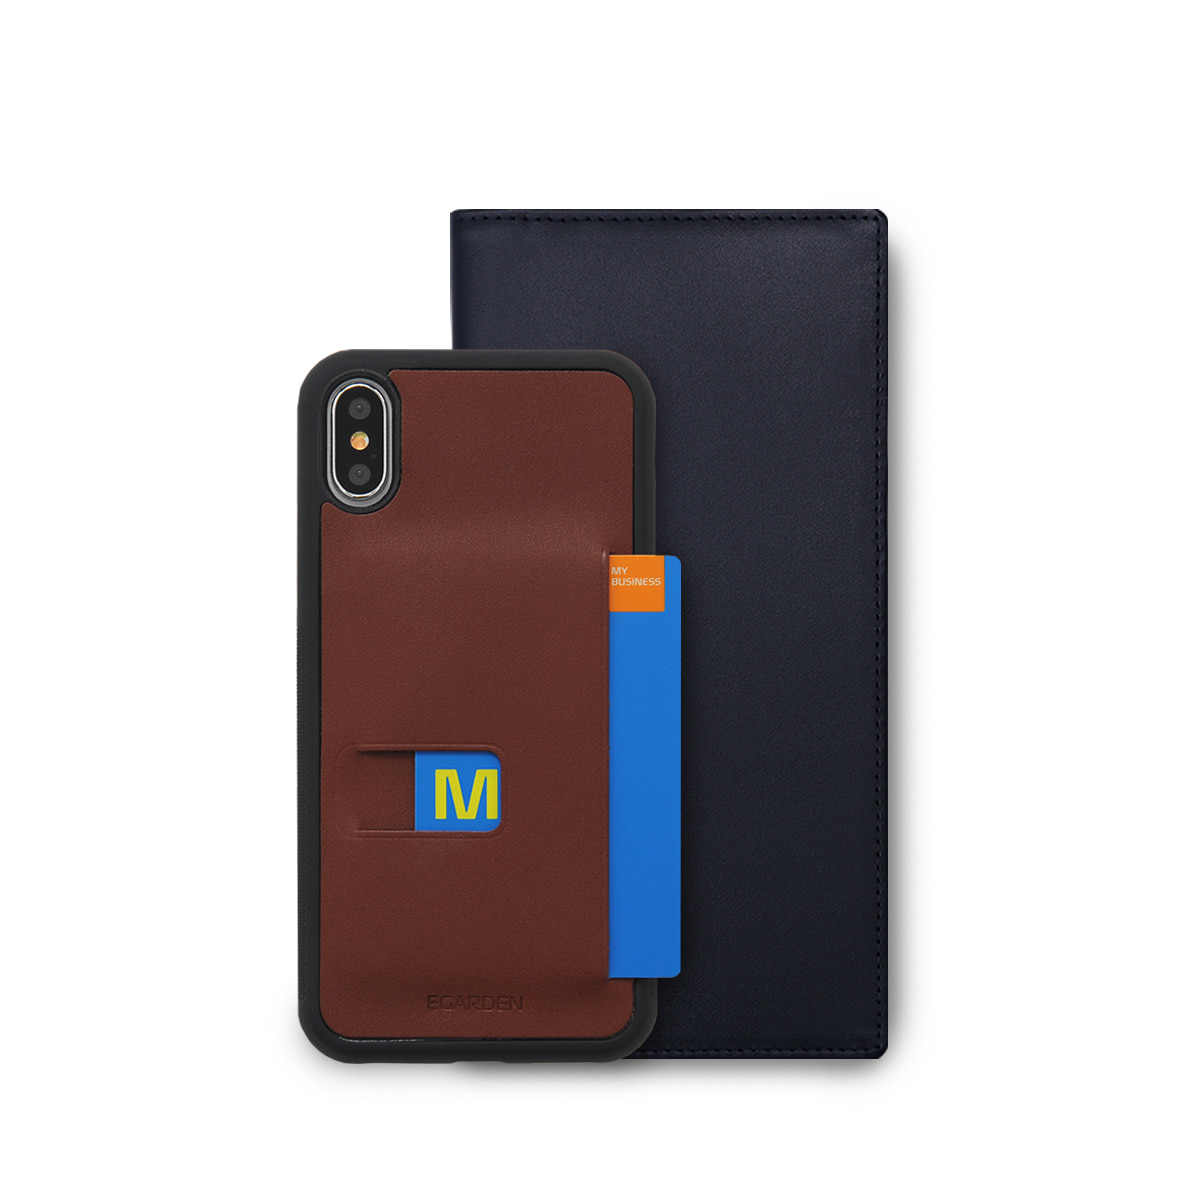 [SET]Flat Long+iPhoneX Case